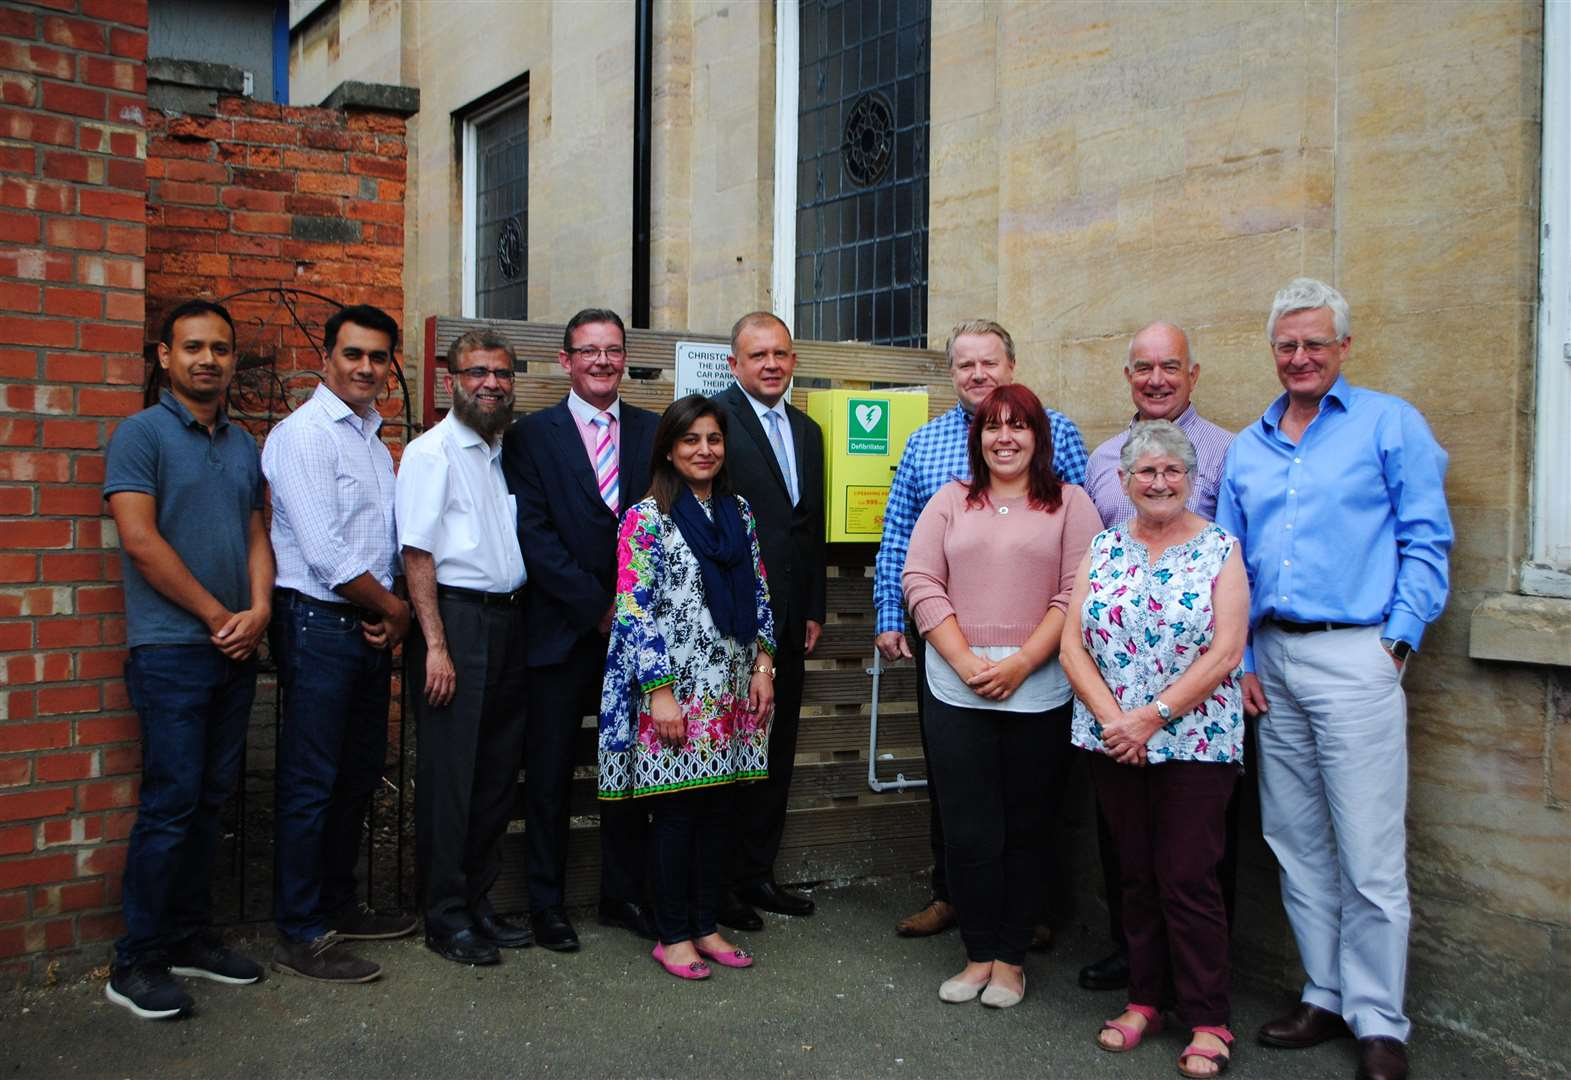 Grantham church and businesses unveil life-saving defibrillator